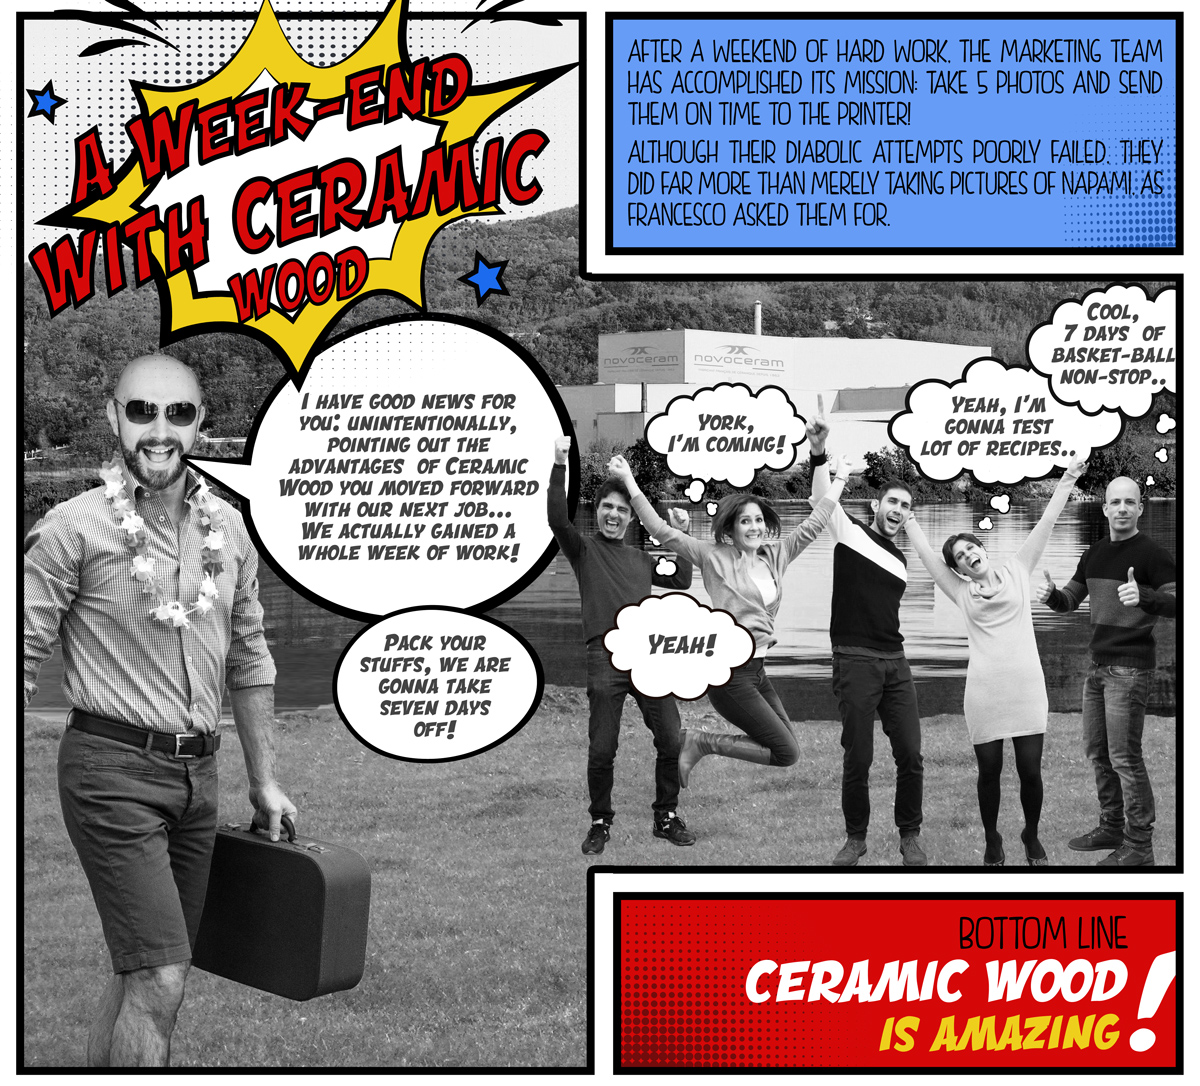 A Week-end with Ceramic Wood - Ceramic Wood is Amazing!